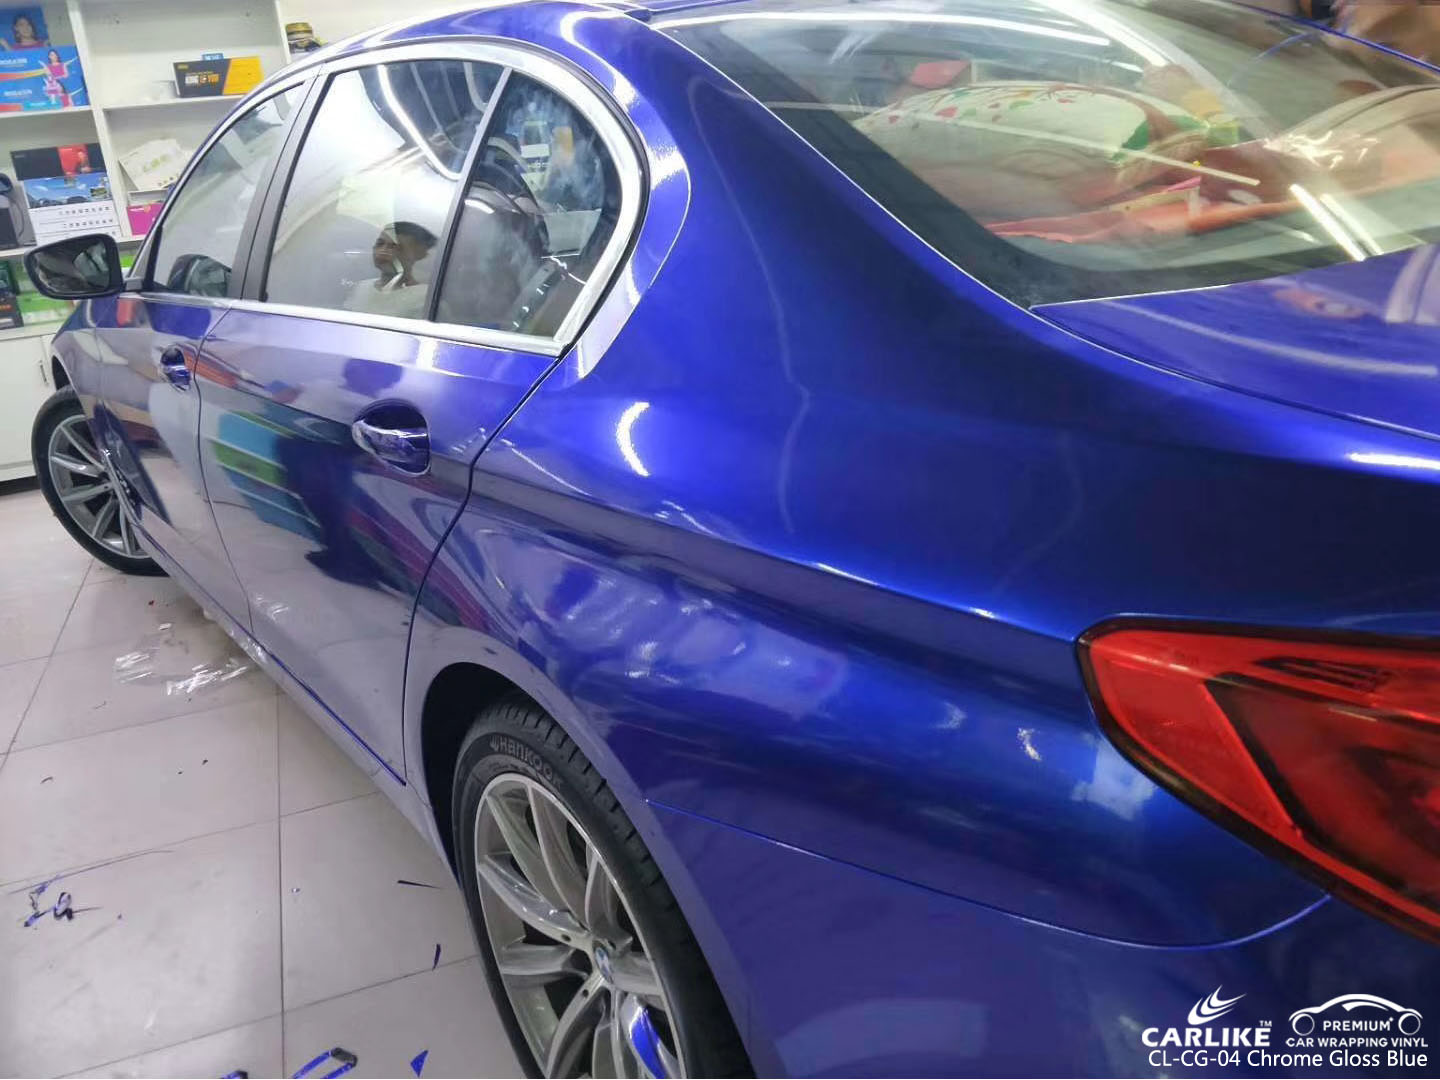 CARLIKE CL-CG-04 CHROME GLOSS BLUE CAR WRAPPING VINYL